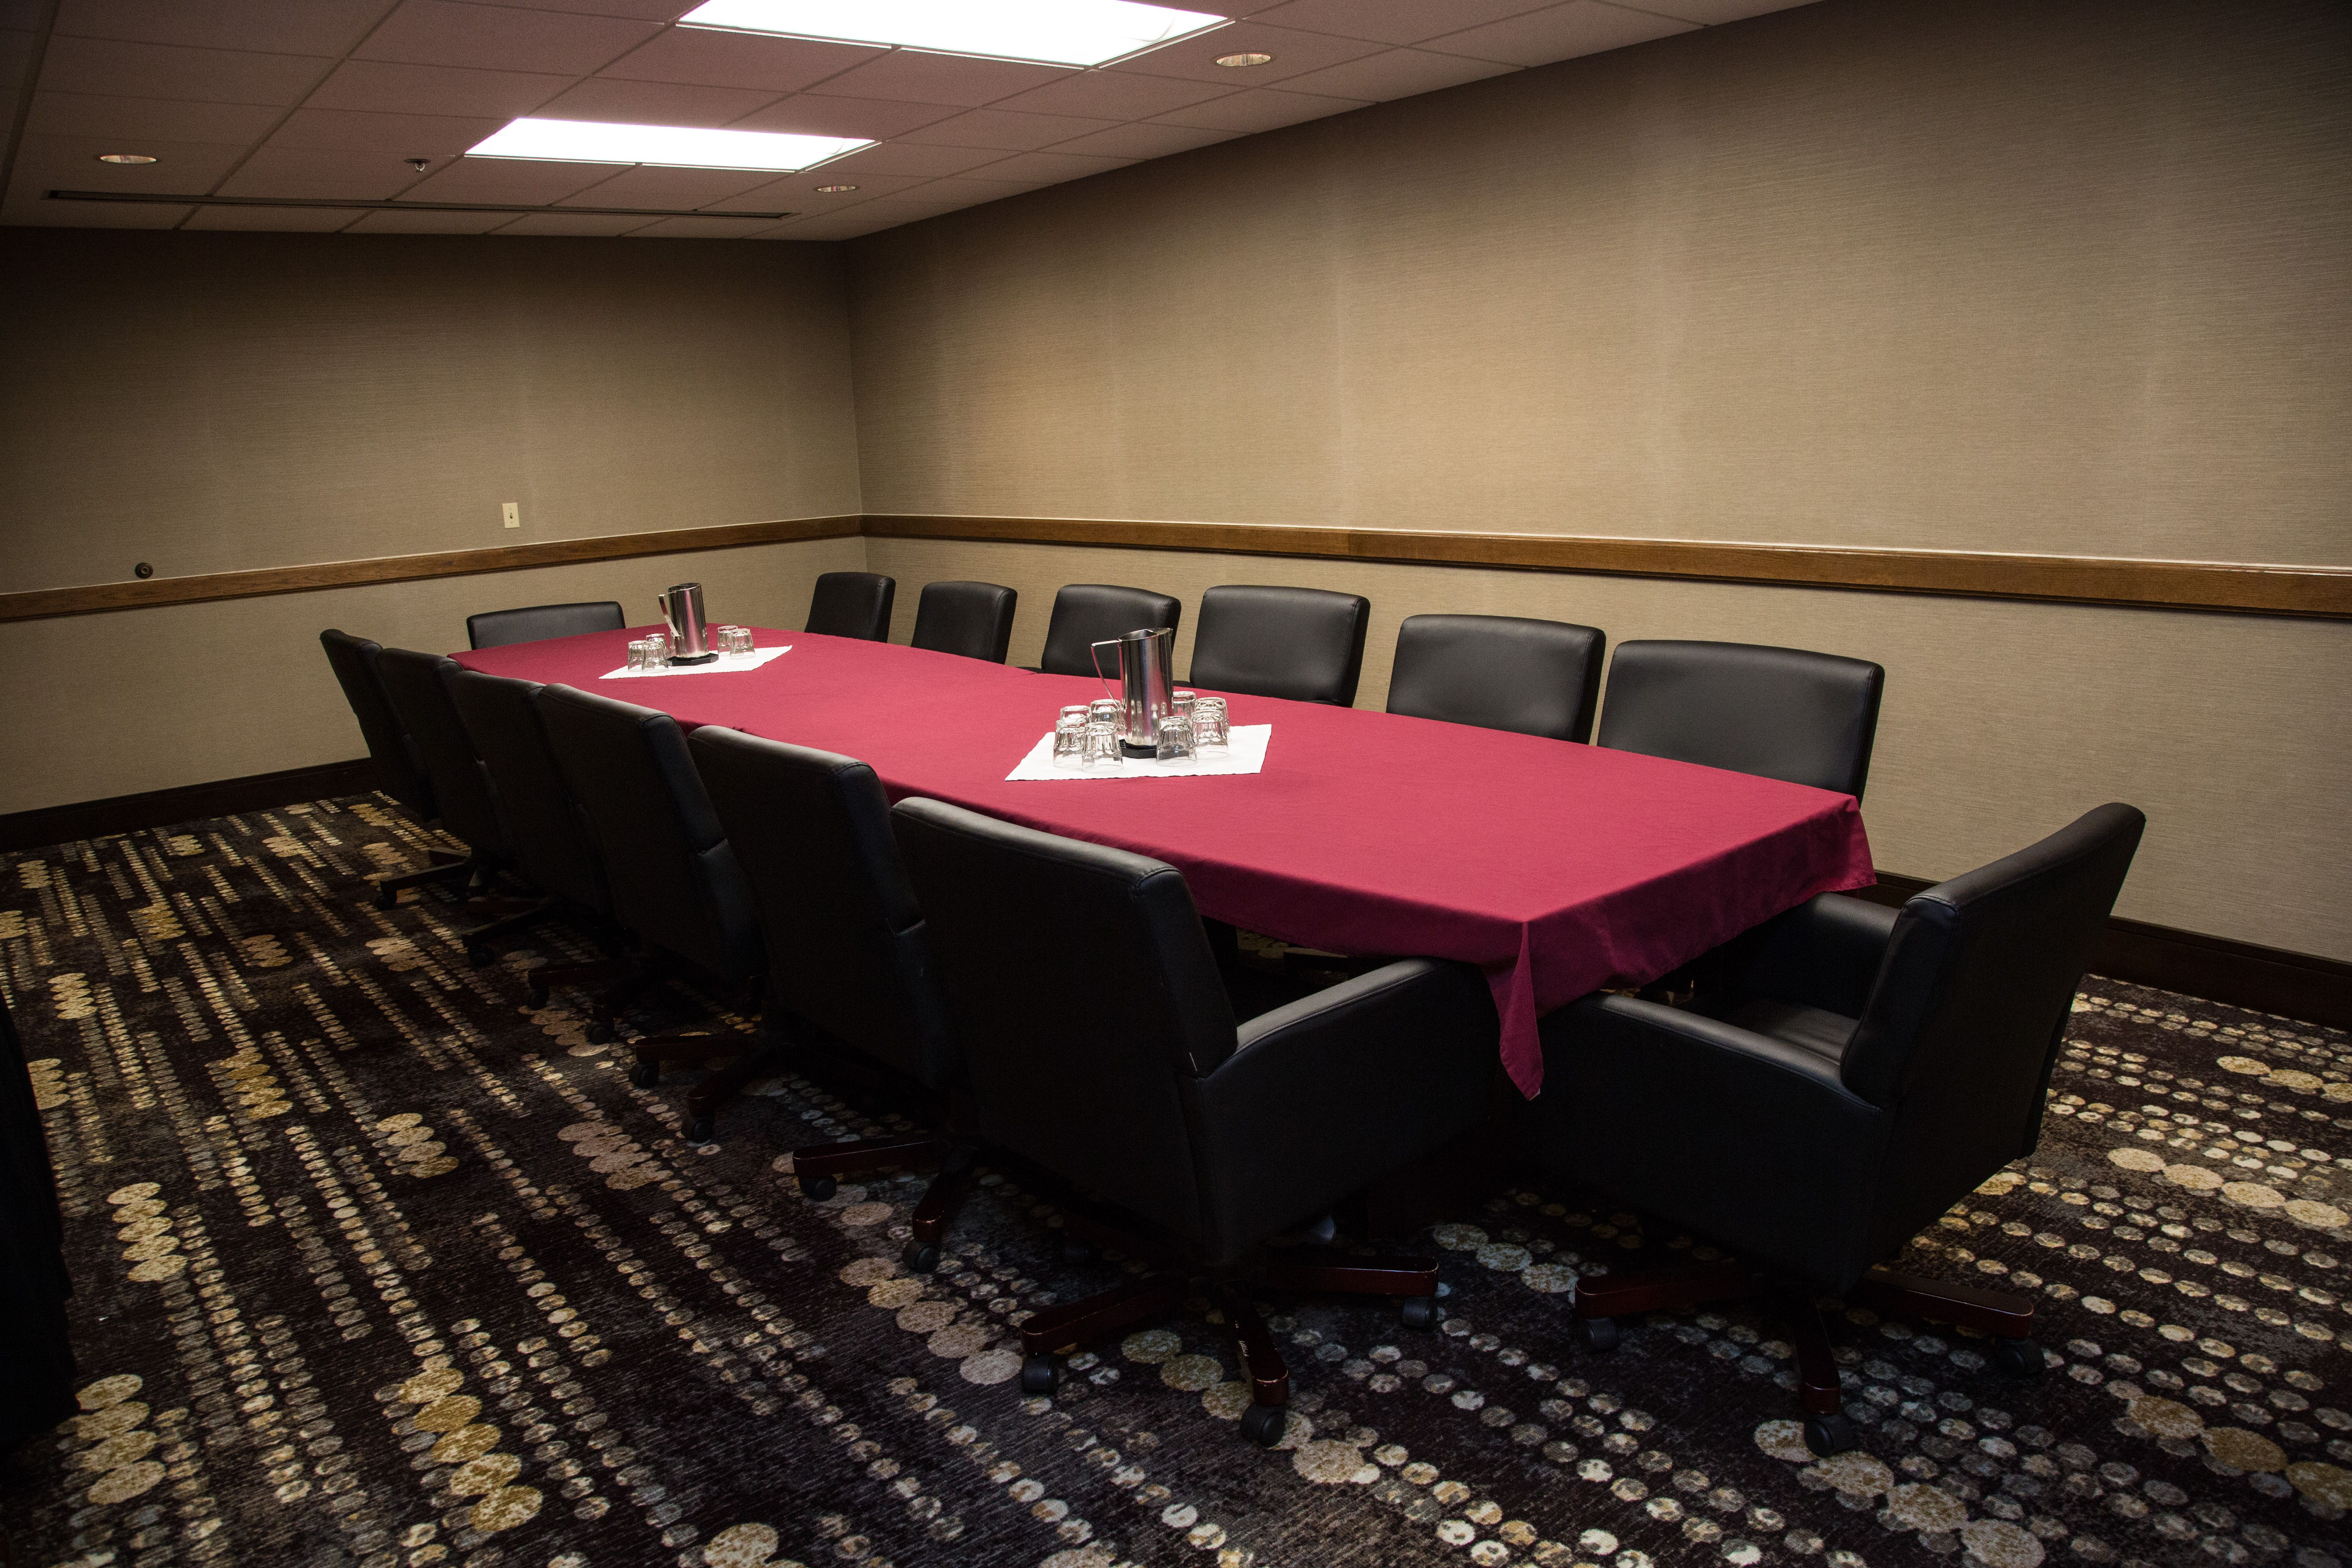 Wyoming Conference Room Photo Claussen Photography Rapid City Hotel Meetings Holiday Inn Rapid City Rushmore Plaza Hotel Hotel Meeting Rapid City Hotels Conference Room